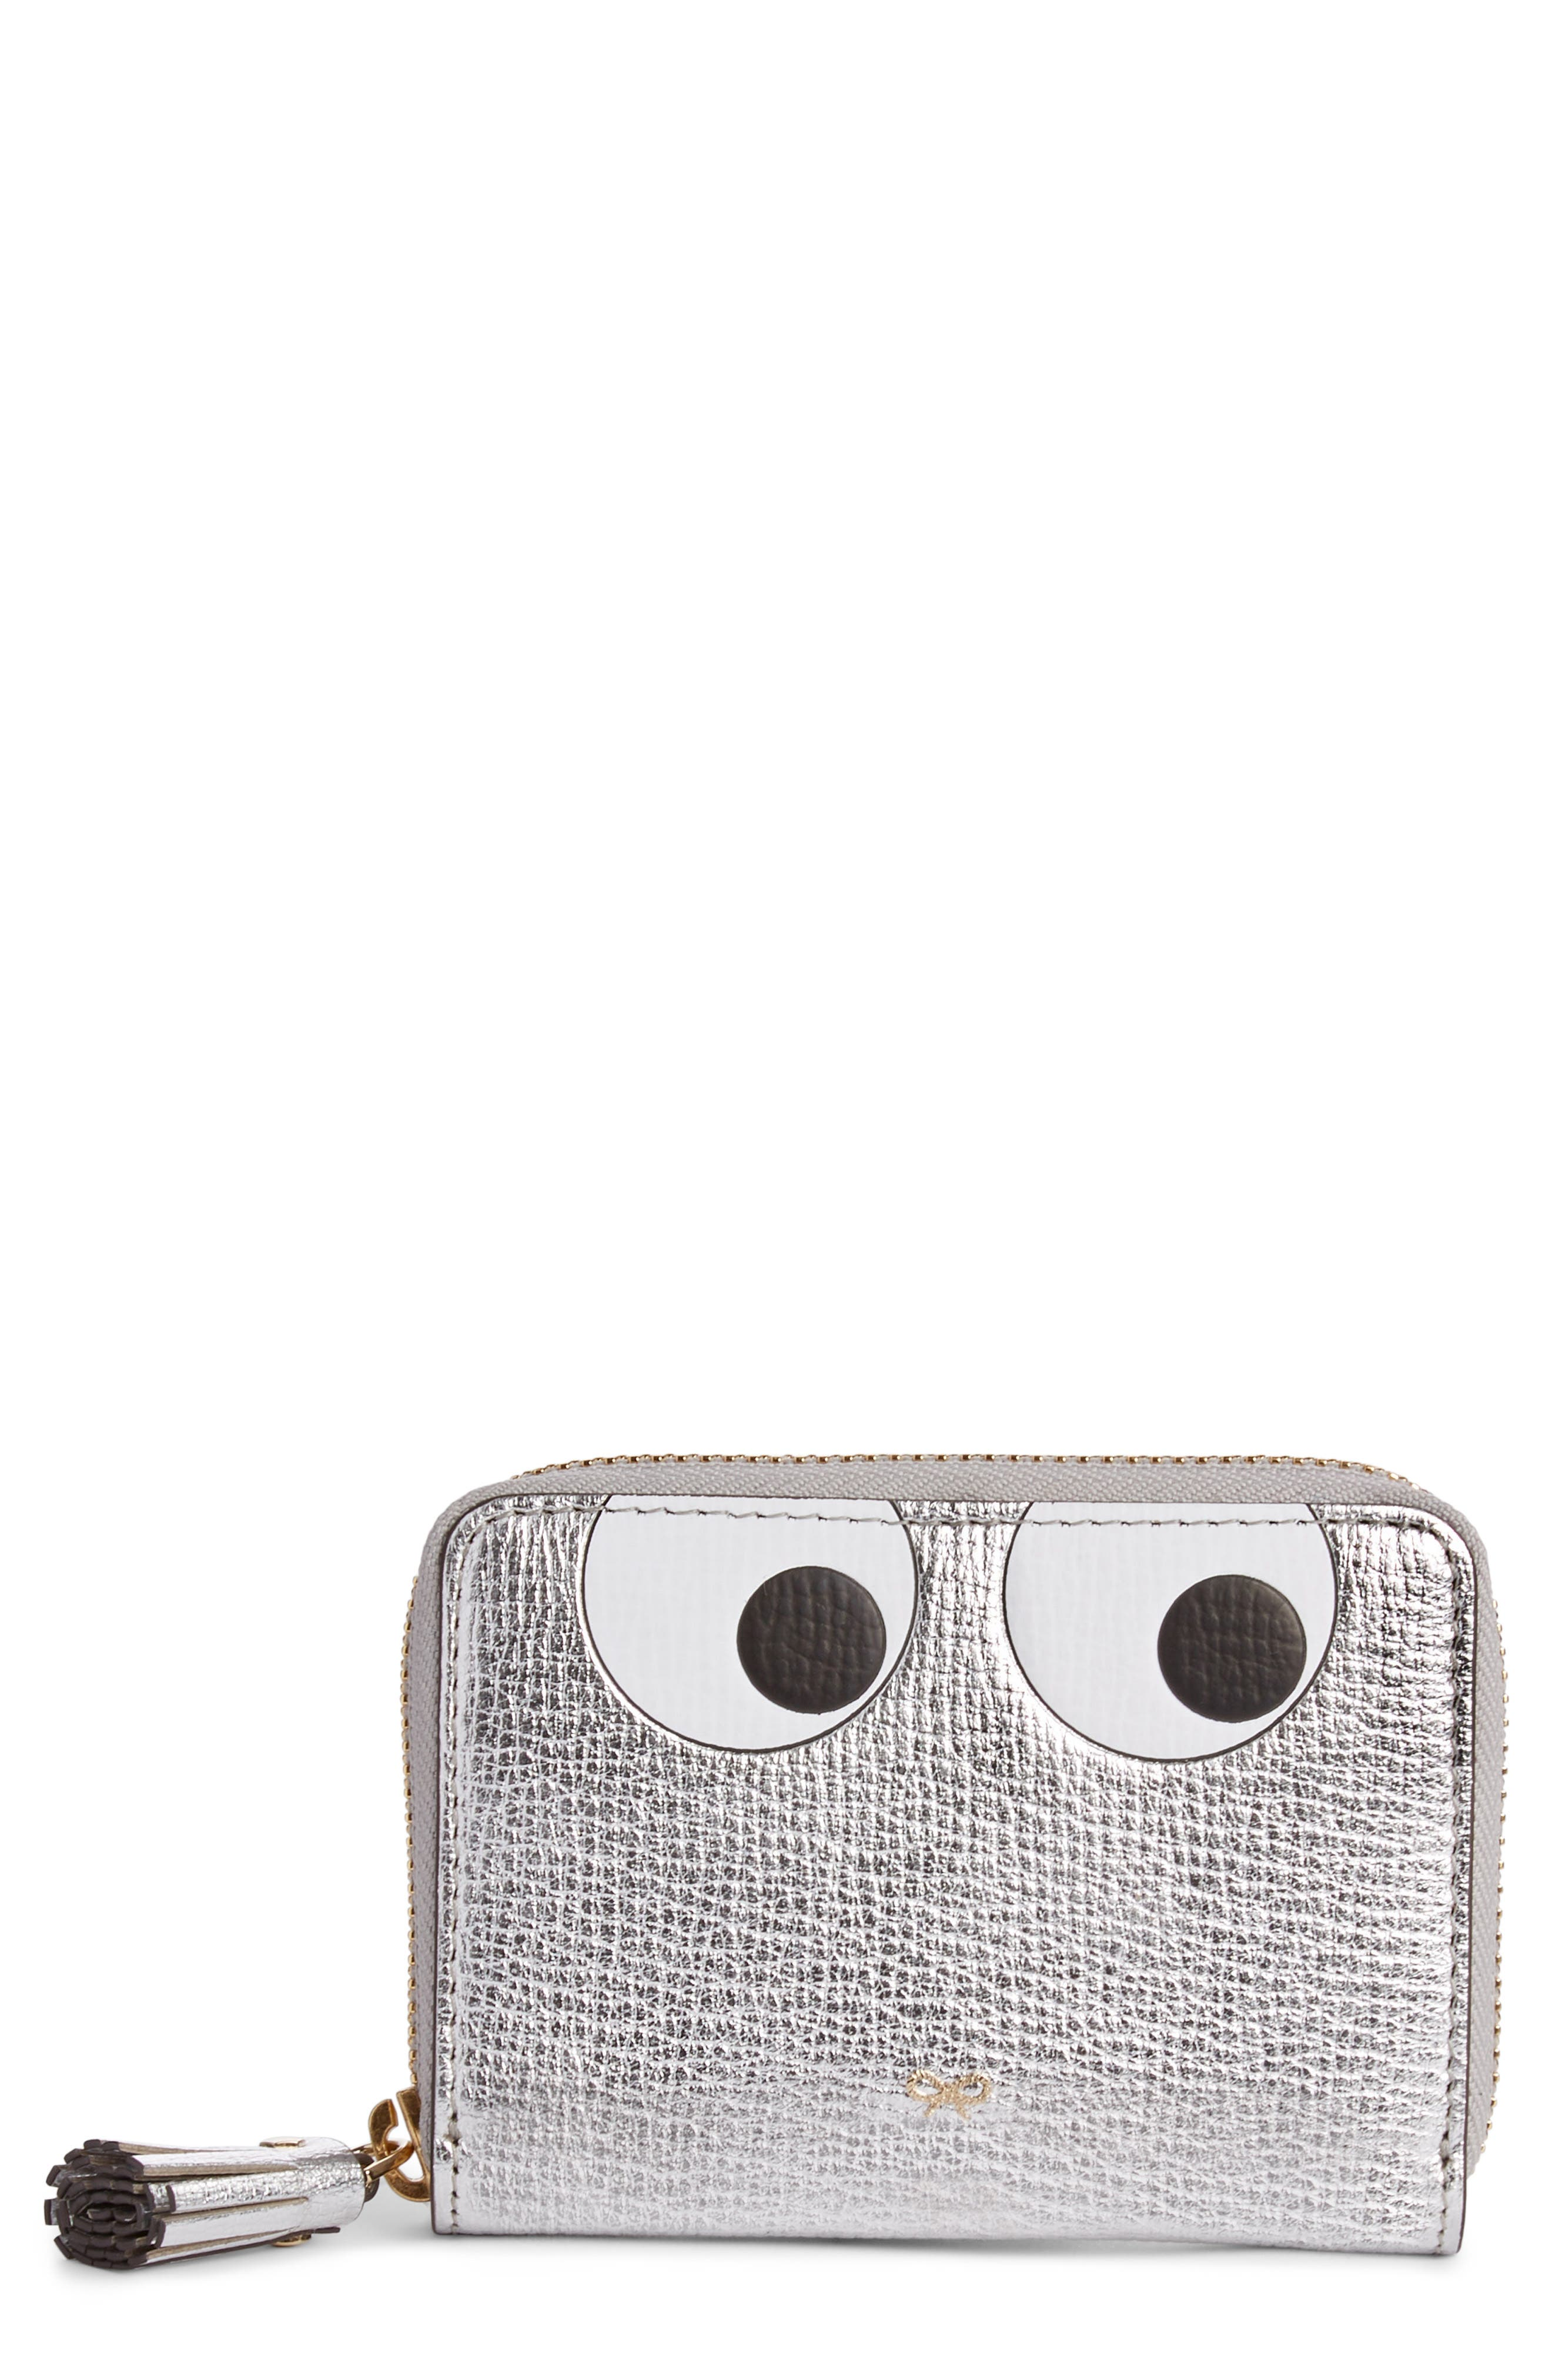 Eyes Small Metallic Leather Zip Around Wallet,                             Main thumbnail 1, color,                             SILVER